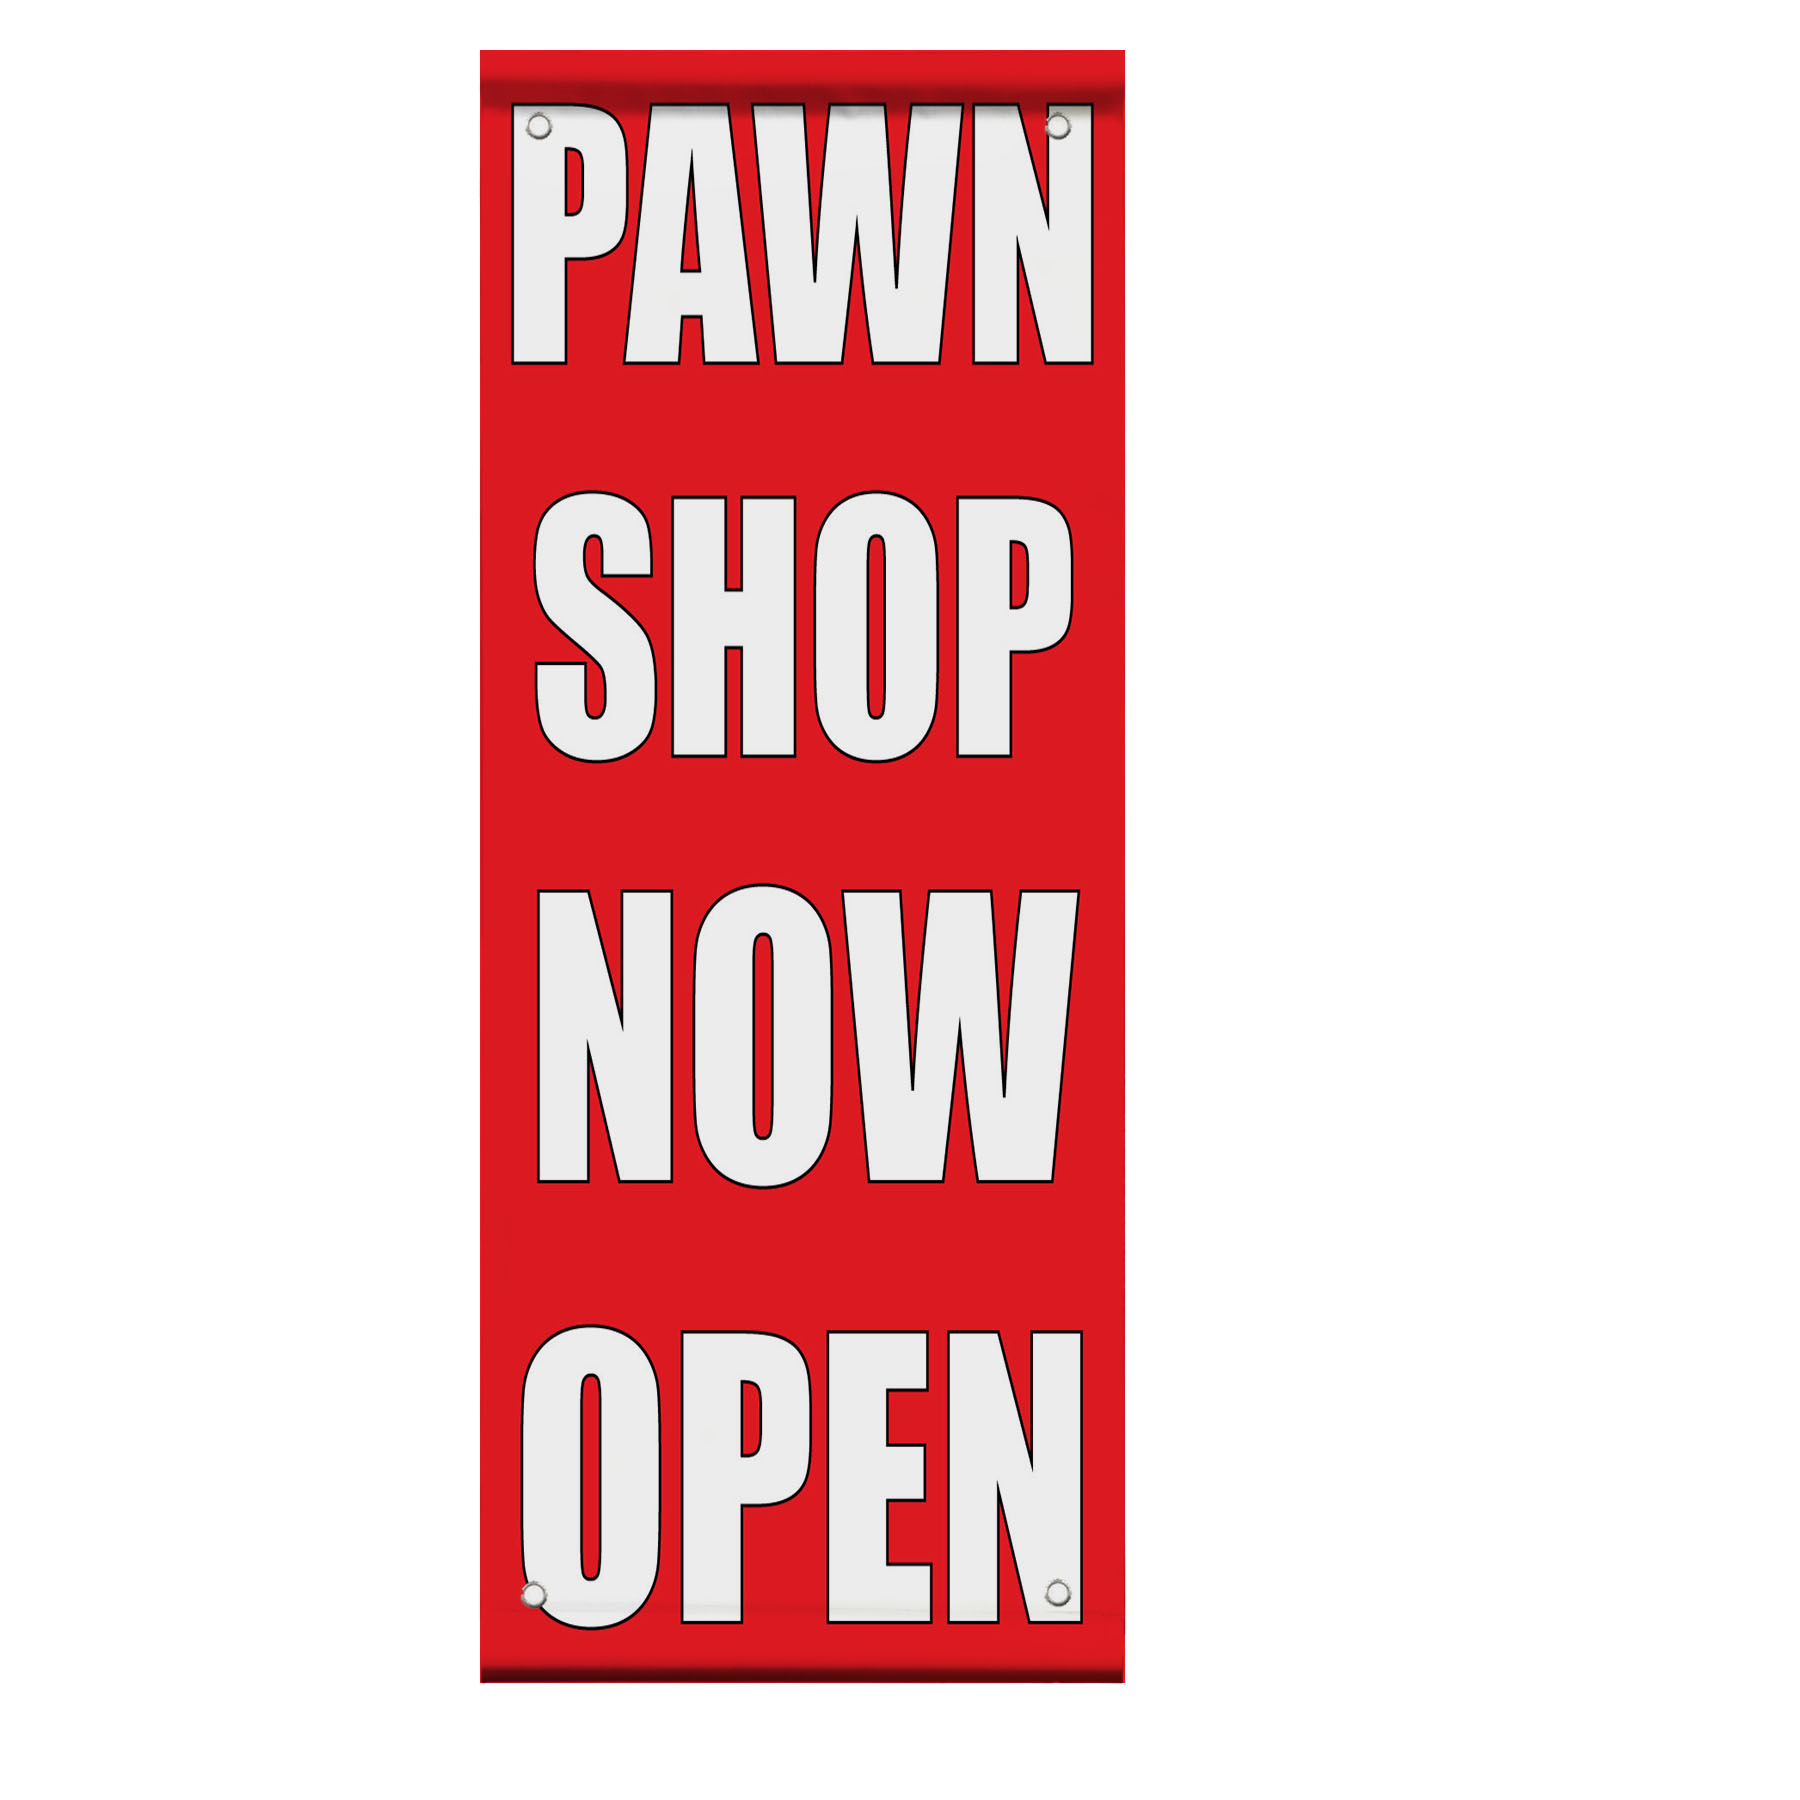 Pawn Shop Now Open Double Sided Vertical Pole Banner Sign. Friend Stickers. Small Flags. Beige Girl Banners. February 9th Signs Of Stroke. Samurai War Banners. Pyrography Lettering. Saints Logo. Design Letter Lettering